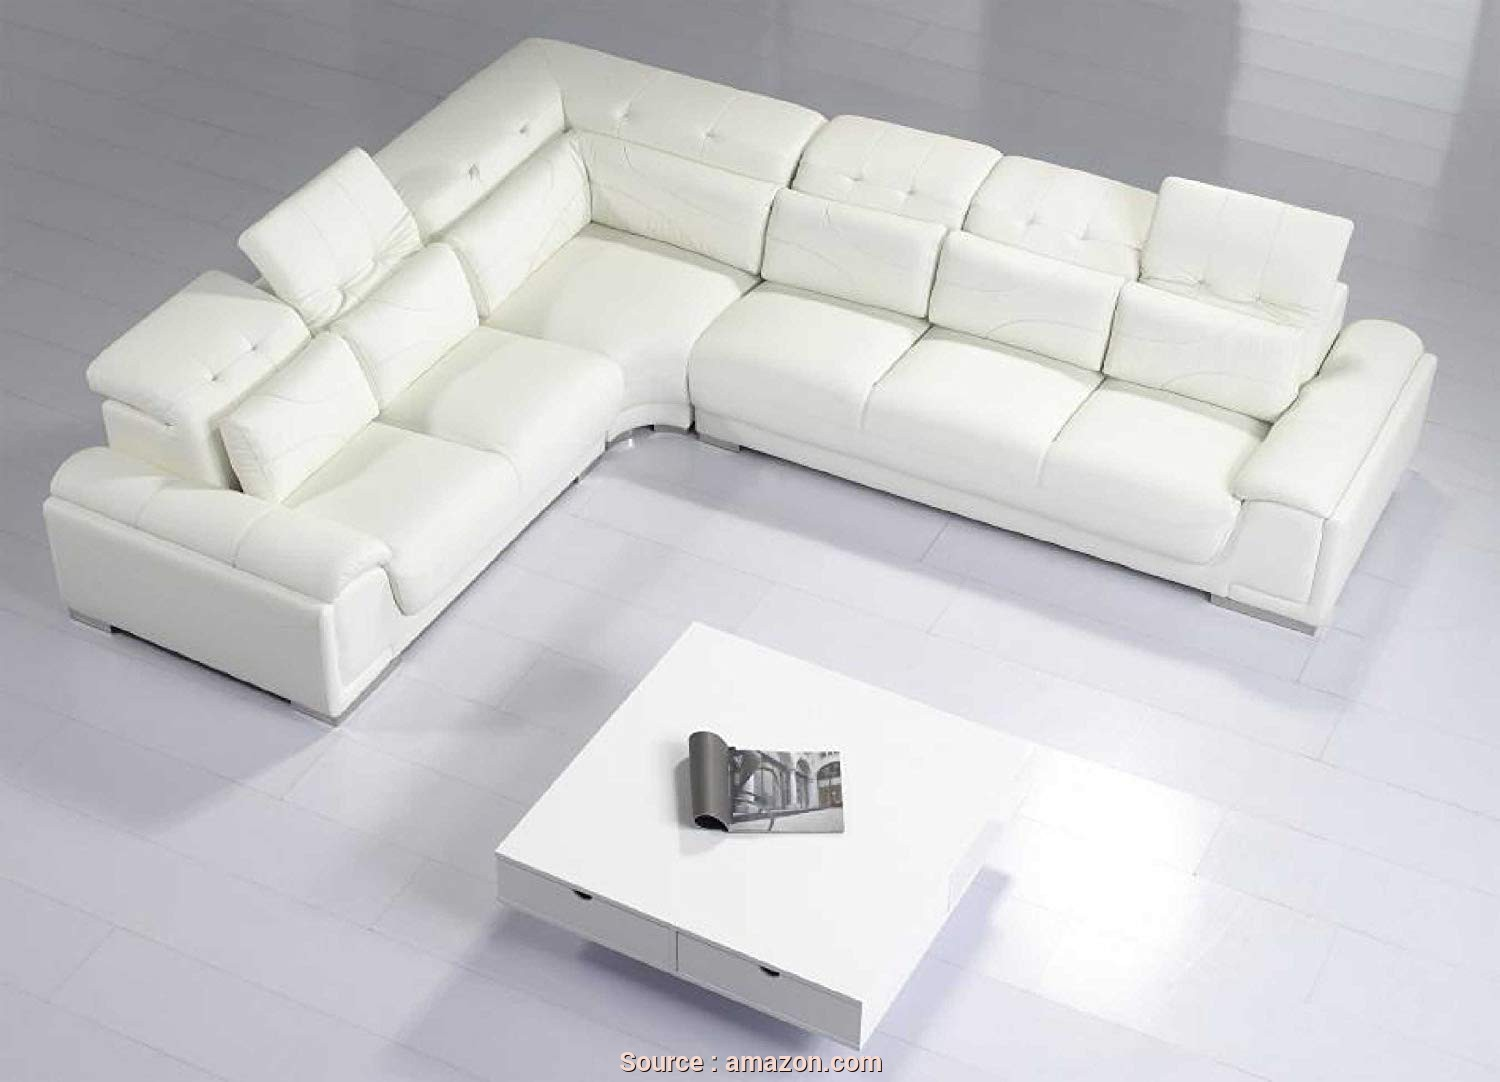 Divano Dm979 Black Modular Office Sofa, Freddo Amazon.Com: Modern Furniture- VIG- T93C, Modern White Leather Sectional Sofa: Kitchen & Dining